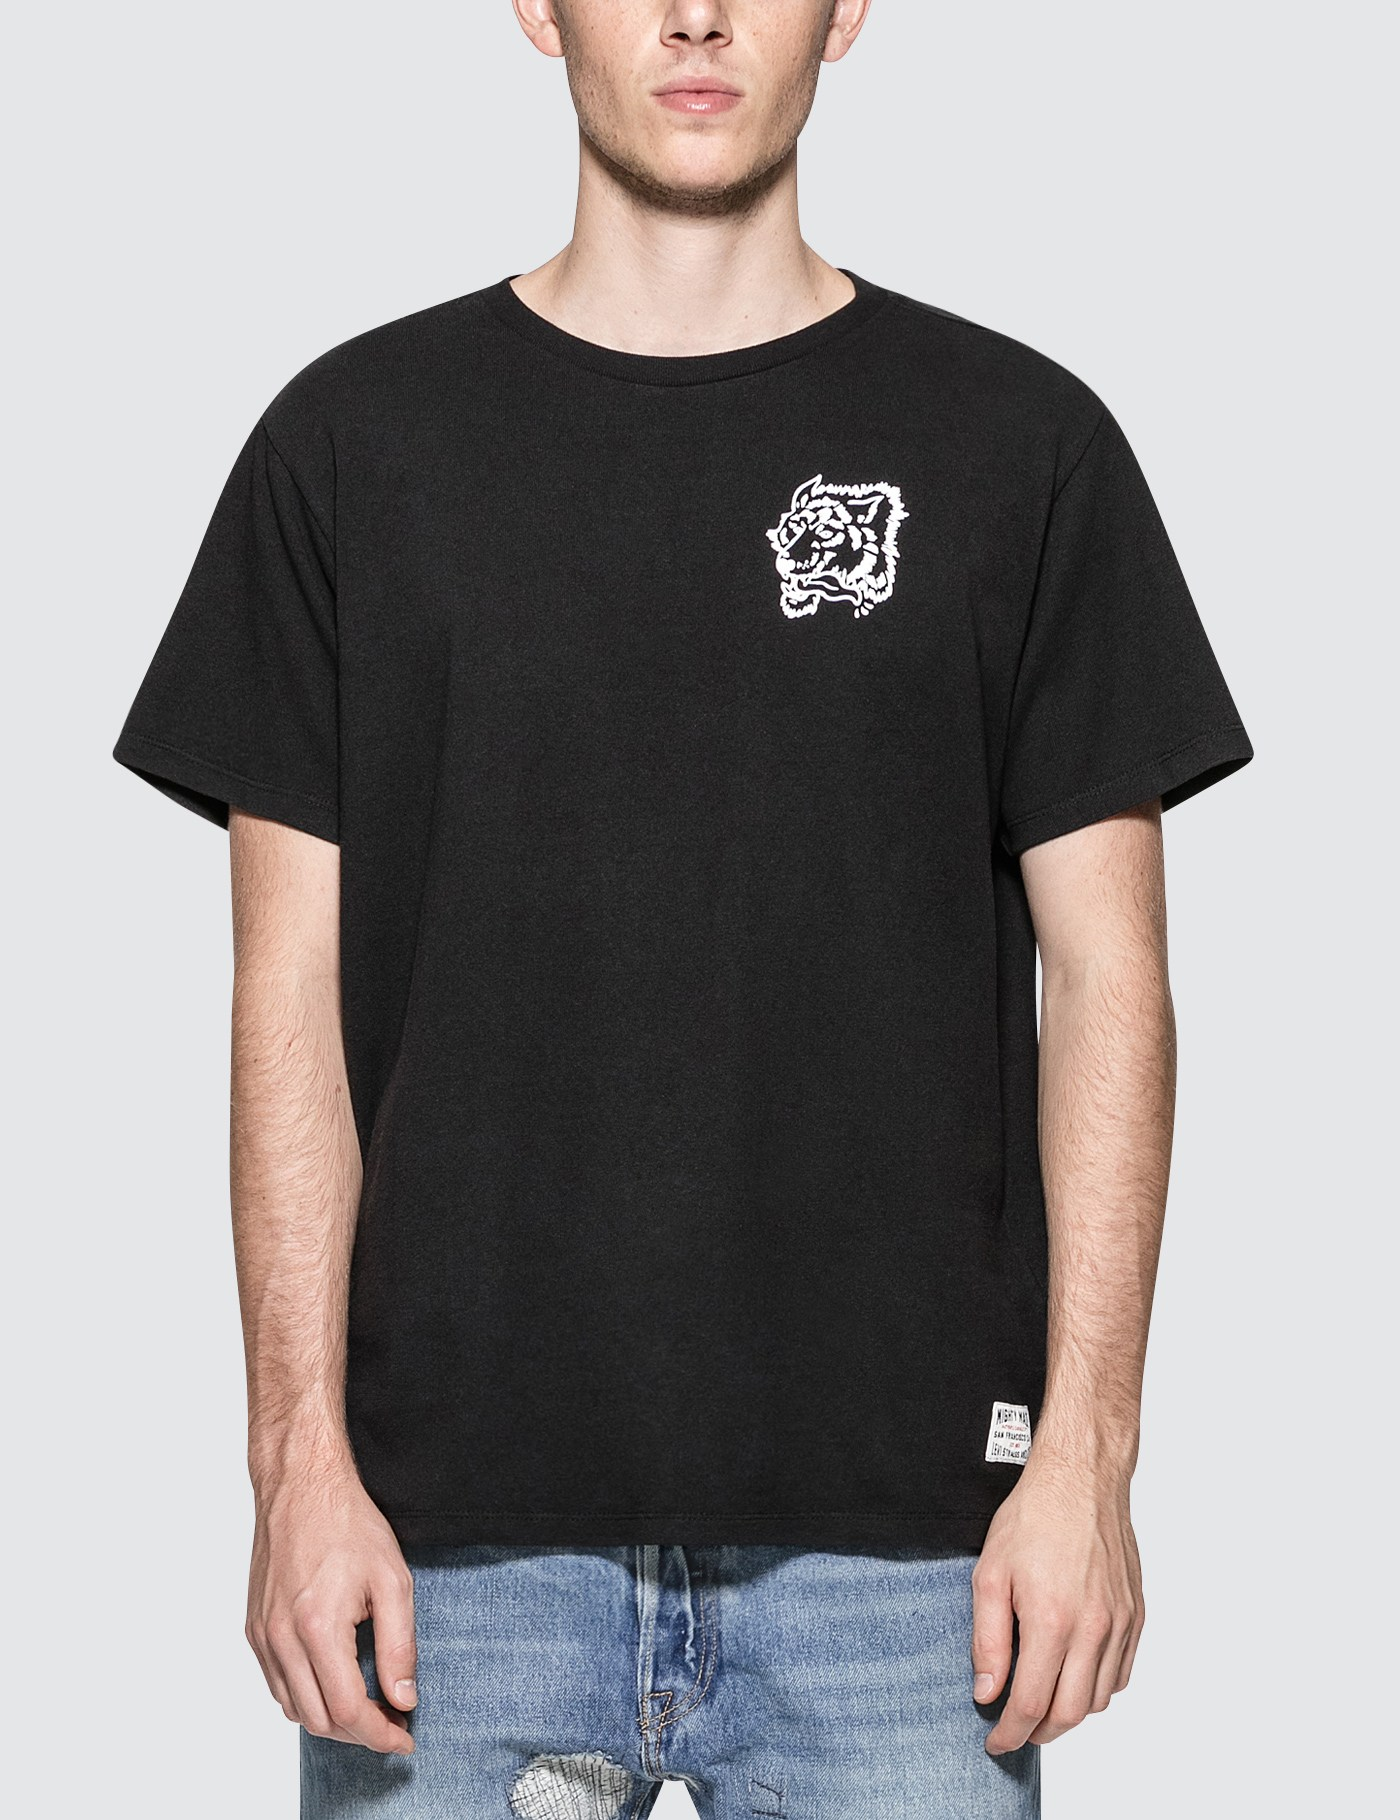 6378186c9b3 Buy Original Levi's Mighty Tiger Graphic S/S T-Shirt at Indonesia ...